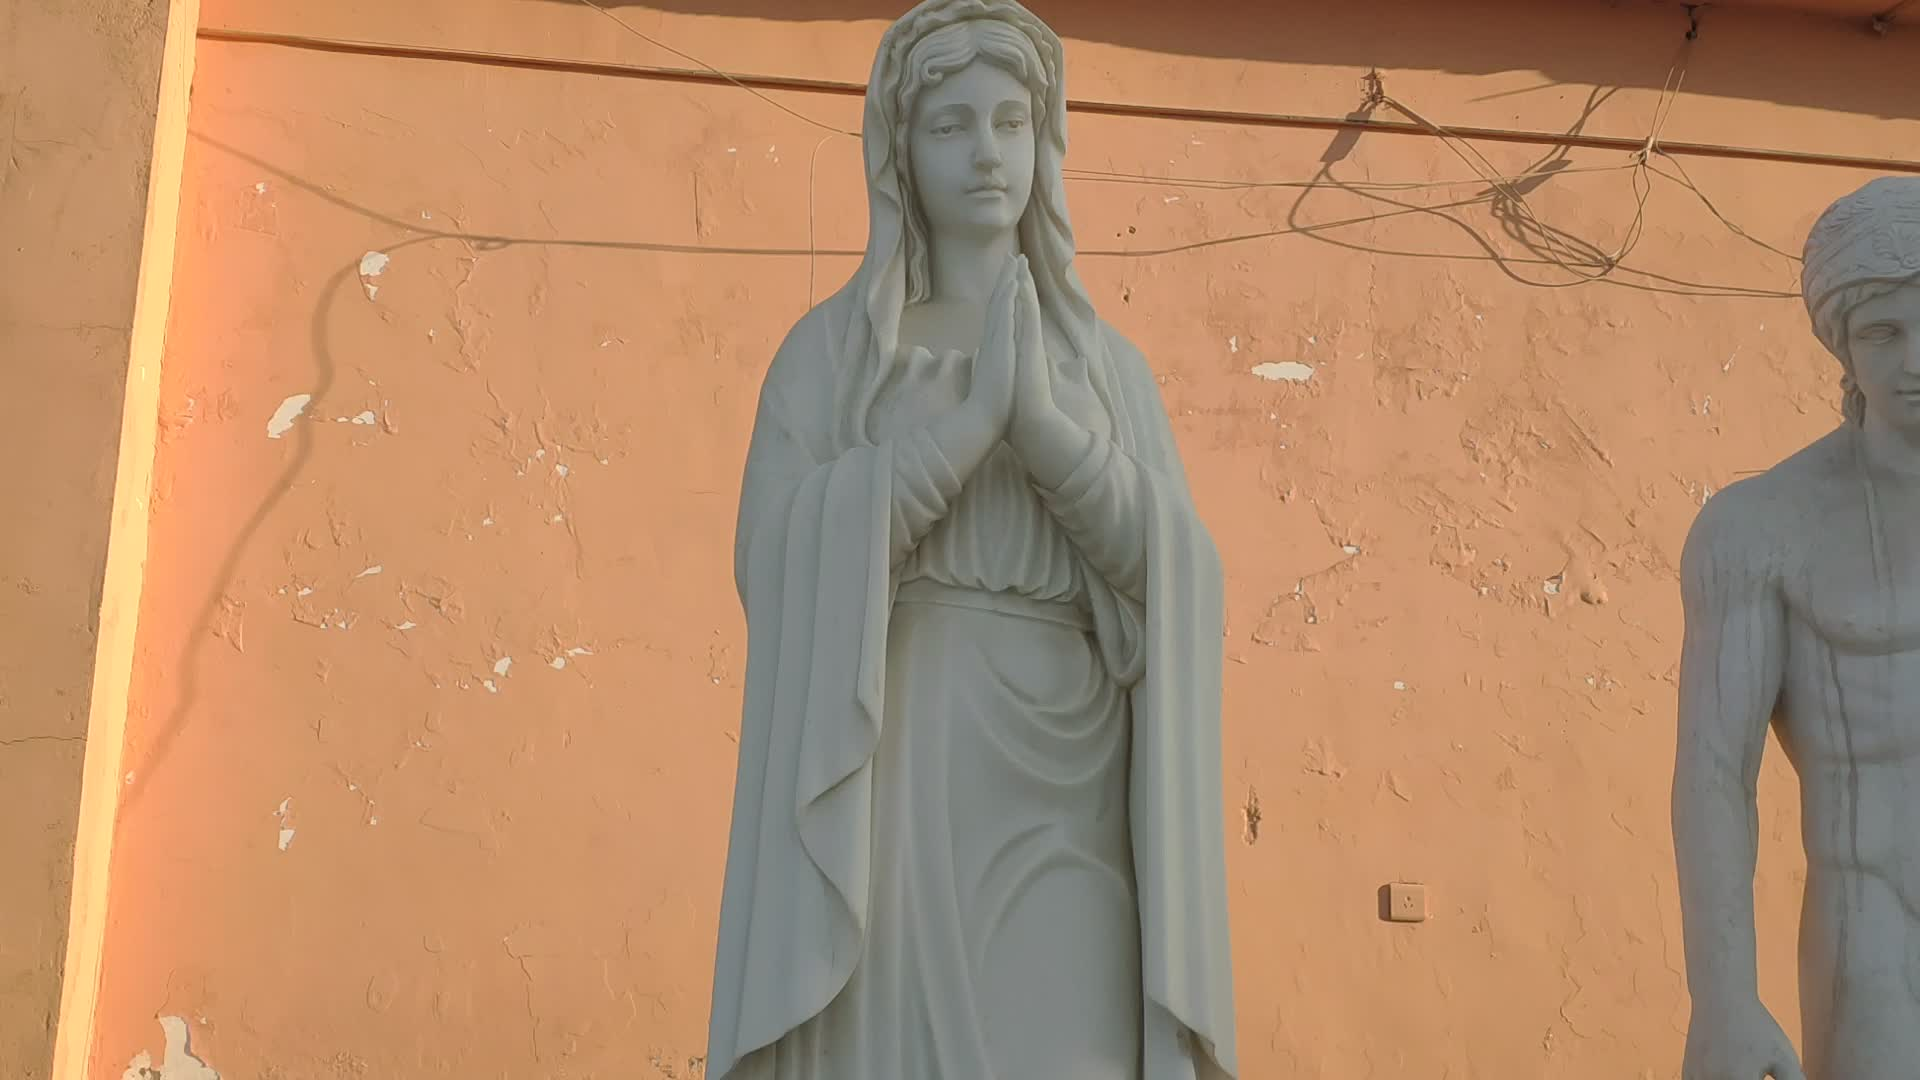 Sculpture art religious marble female stone virgin mary statue NTBSP-11